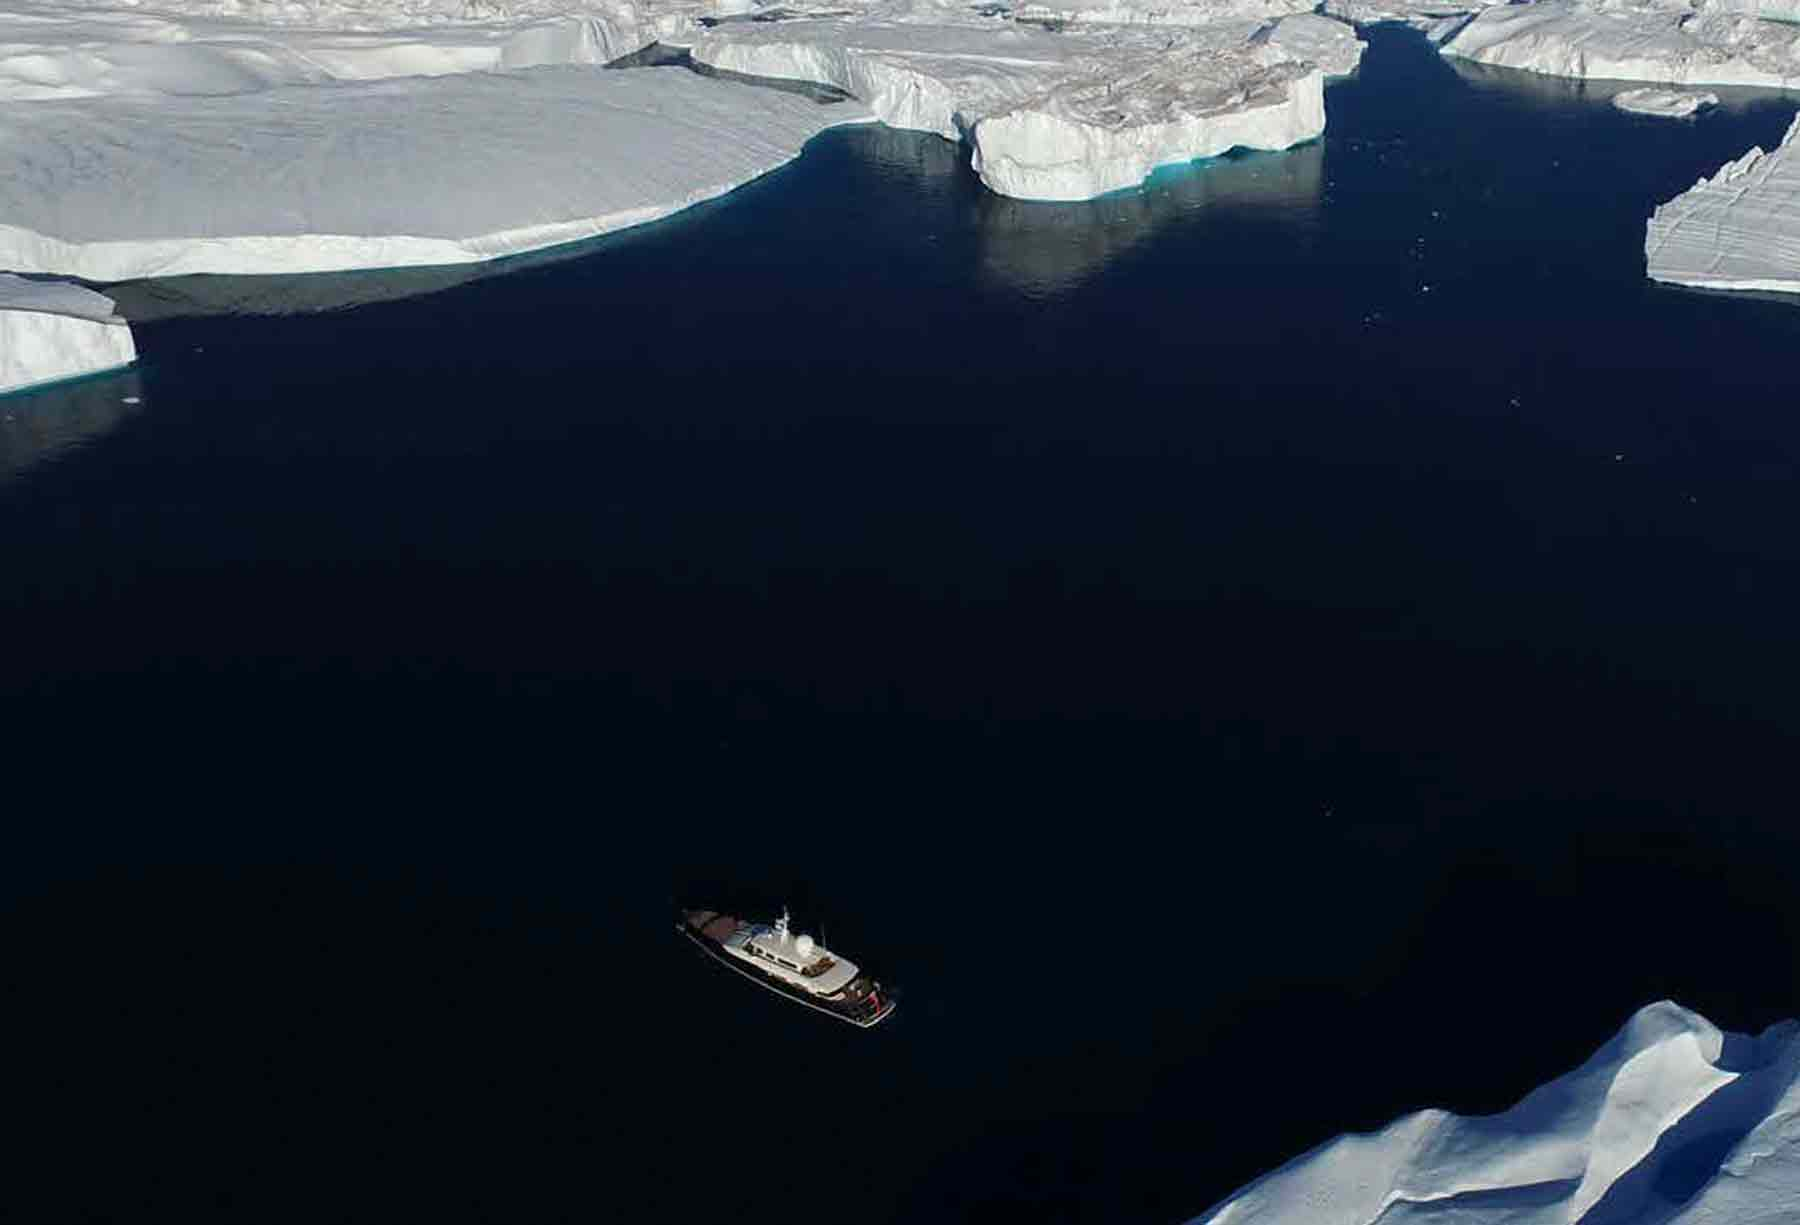 arial view of explorer superyacht and icebergs